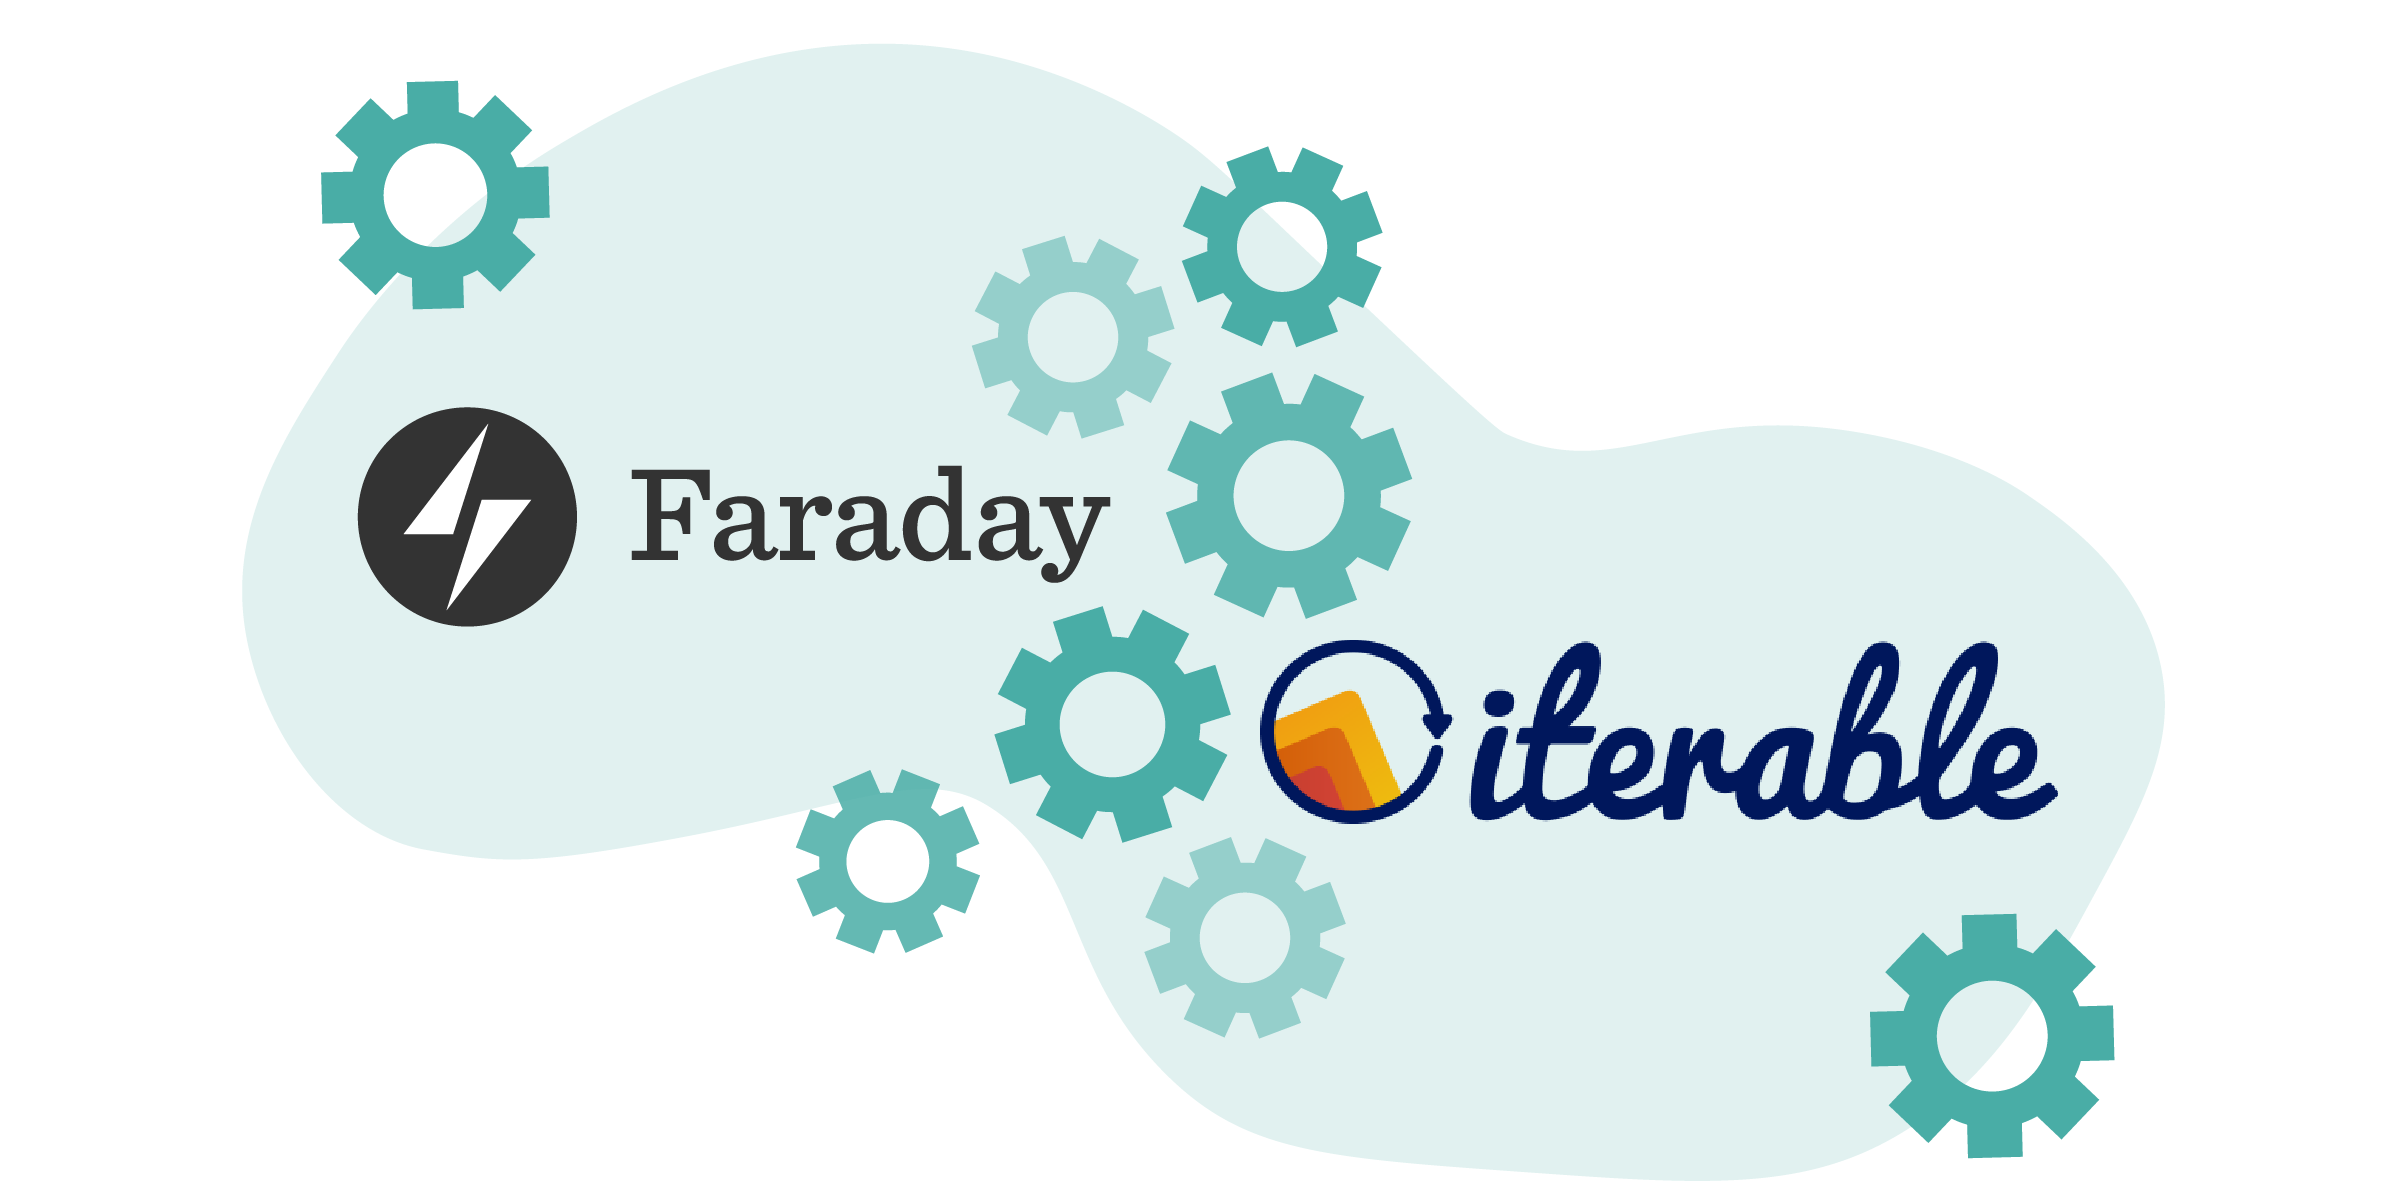 faraday_iterable_partnership_graphic